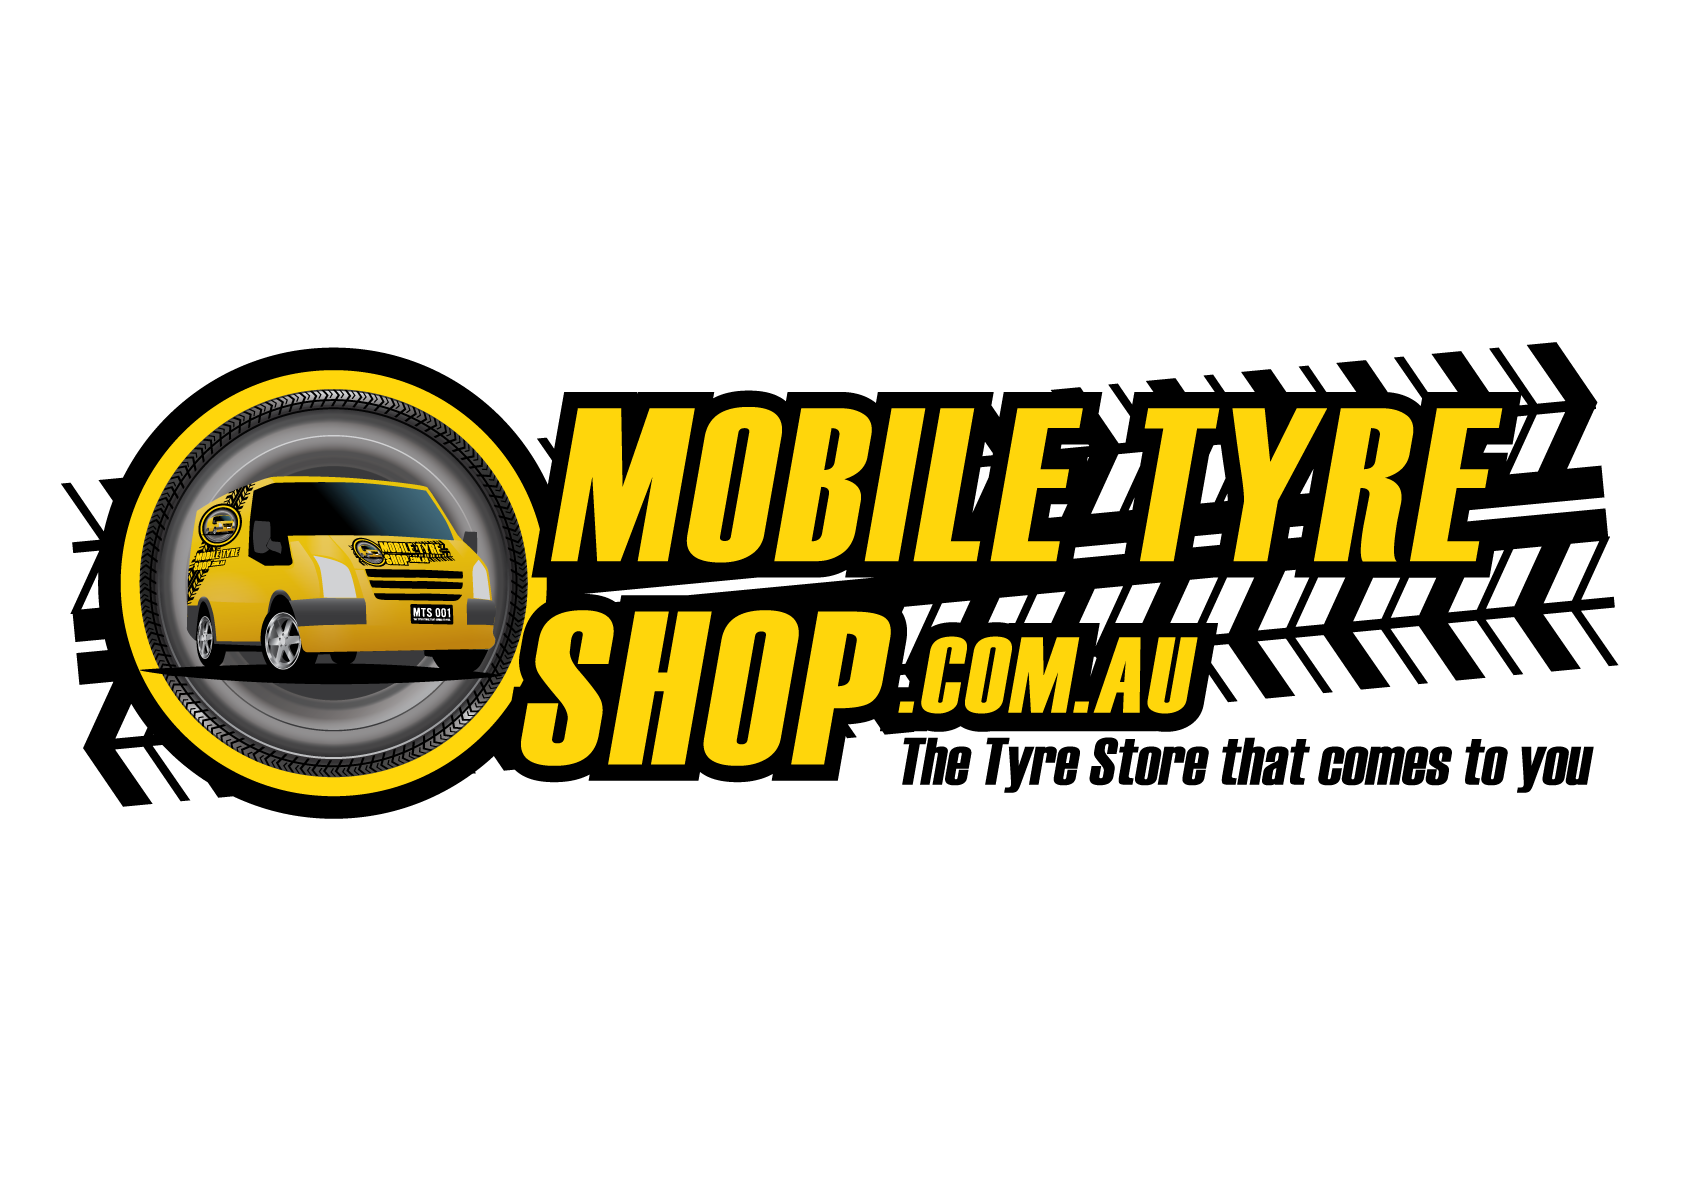 logo for Mobile Tyre Shop.com.au